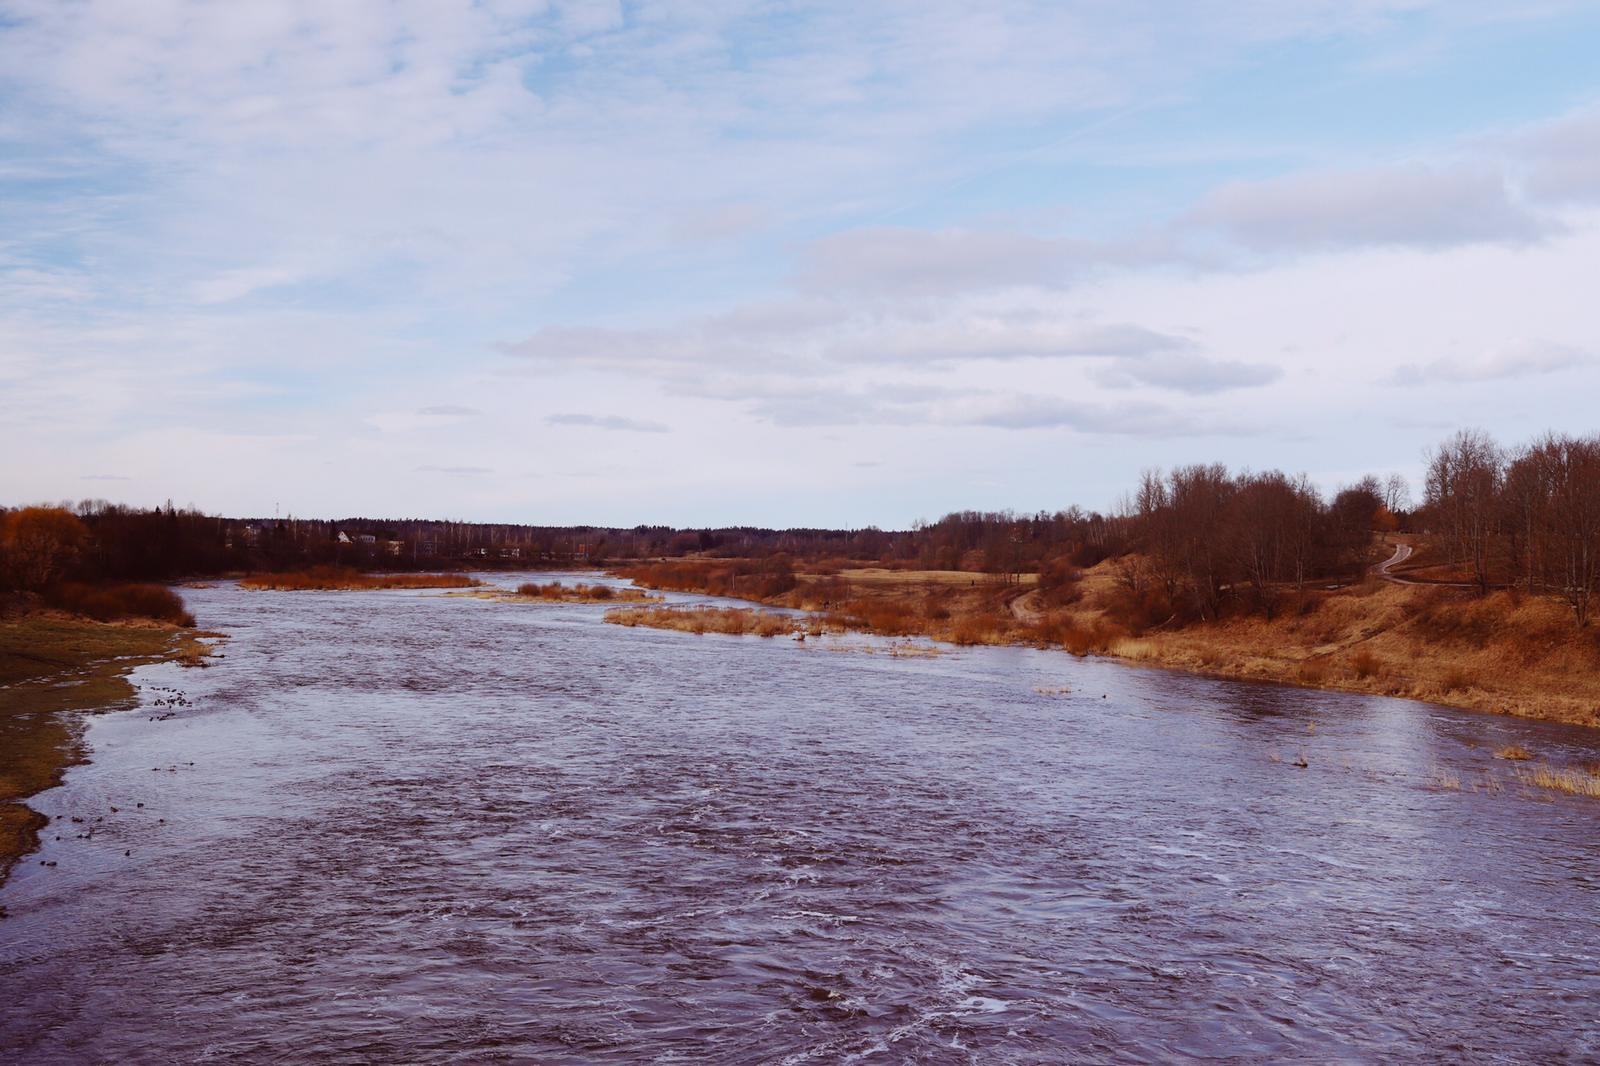 Venta River with Kuldīga and Kalnmuiža in the distance.